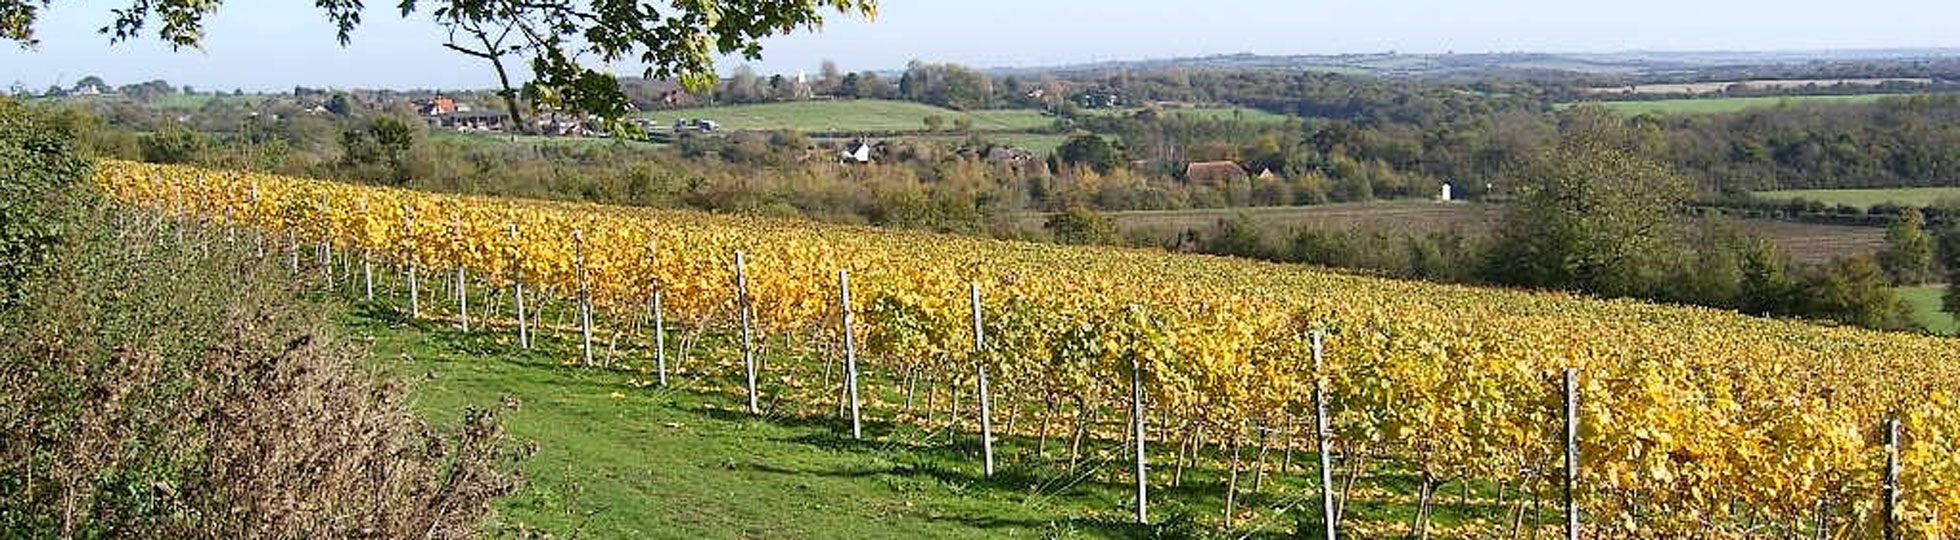 After the harvest of Pinot Noir & Chardonnay at Martin's Lane, Stow Maries, Essex